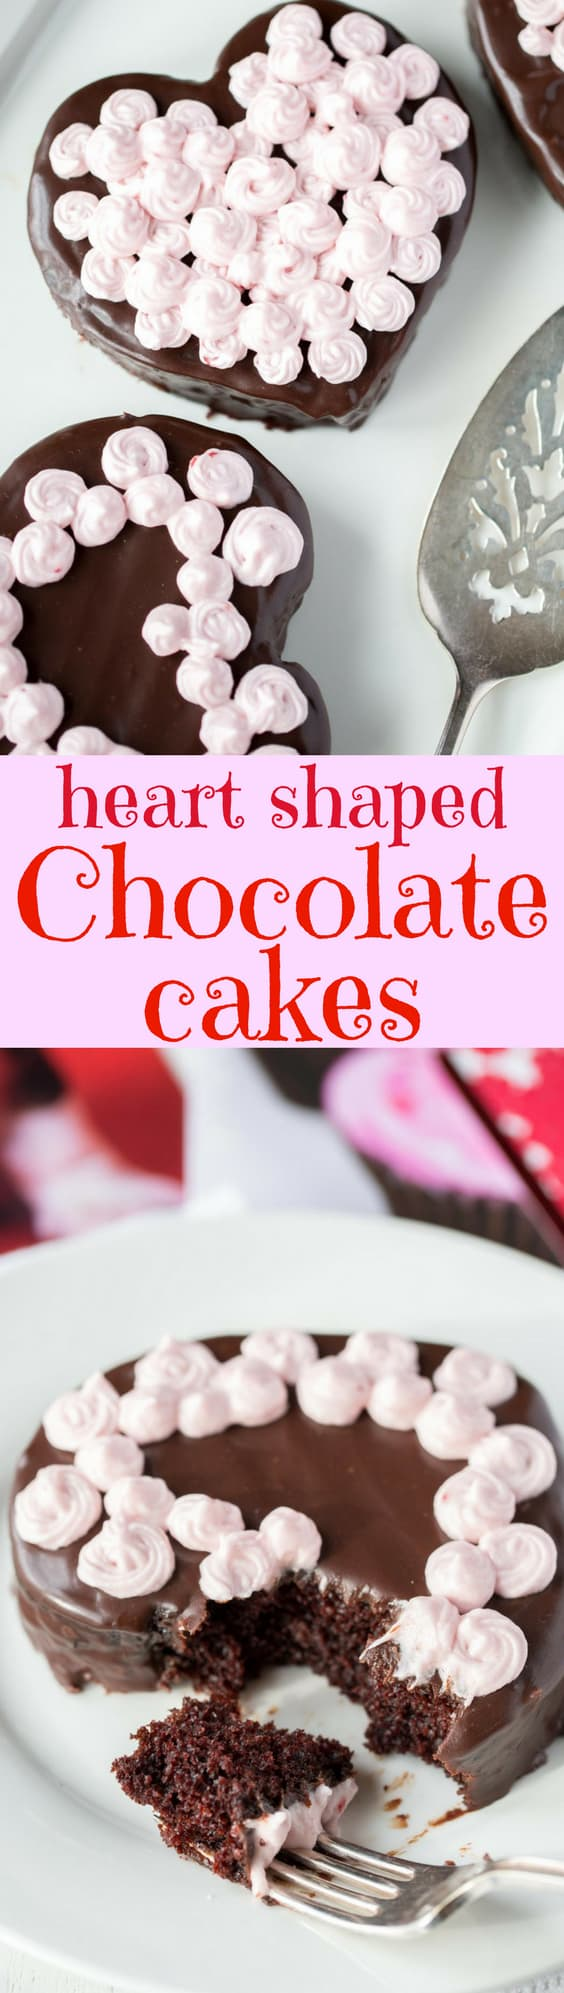 Heart Shaped Chocolate Cake - A deliciously moist chocolate cake that is dairy and egg-free. No mixer required and it's great eaten warm or cold. A truly versatile recipe great baked as a cupcake or in a pan. www.savingdessert.com